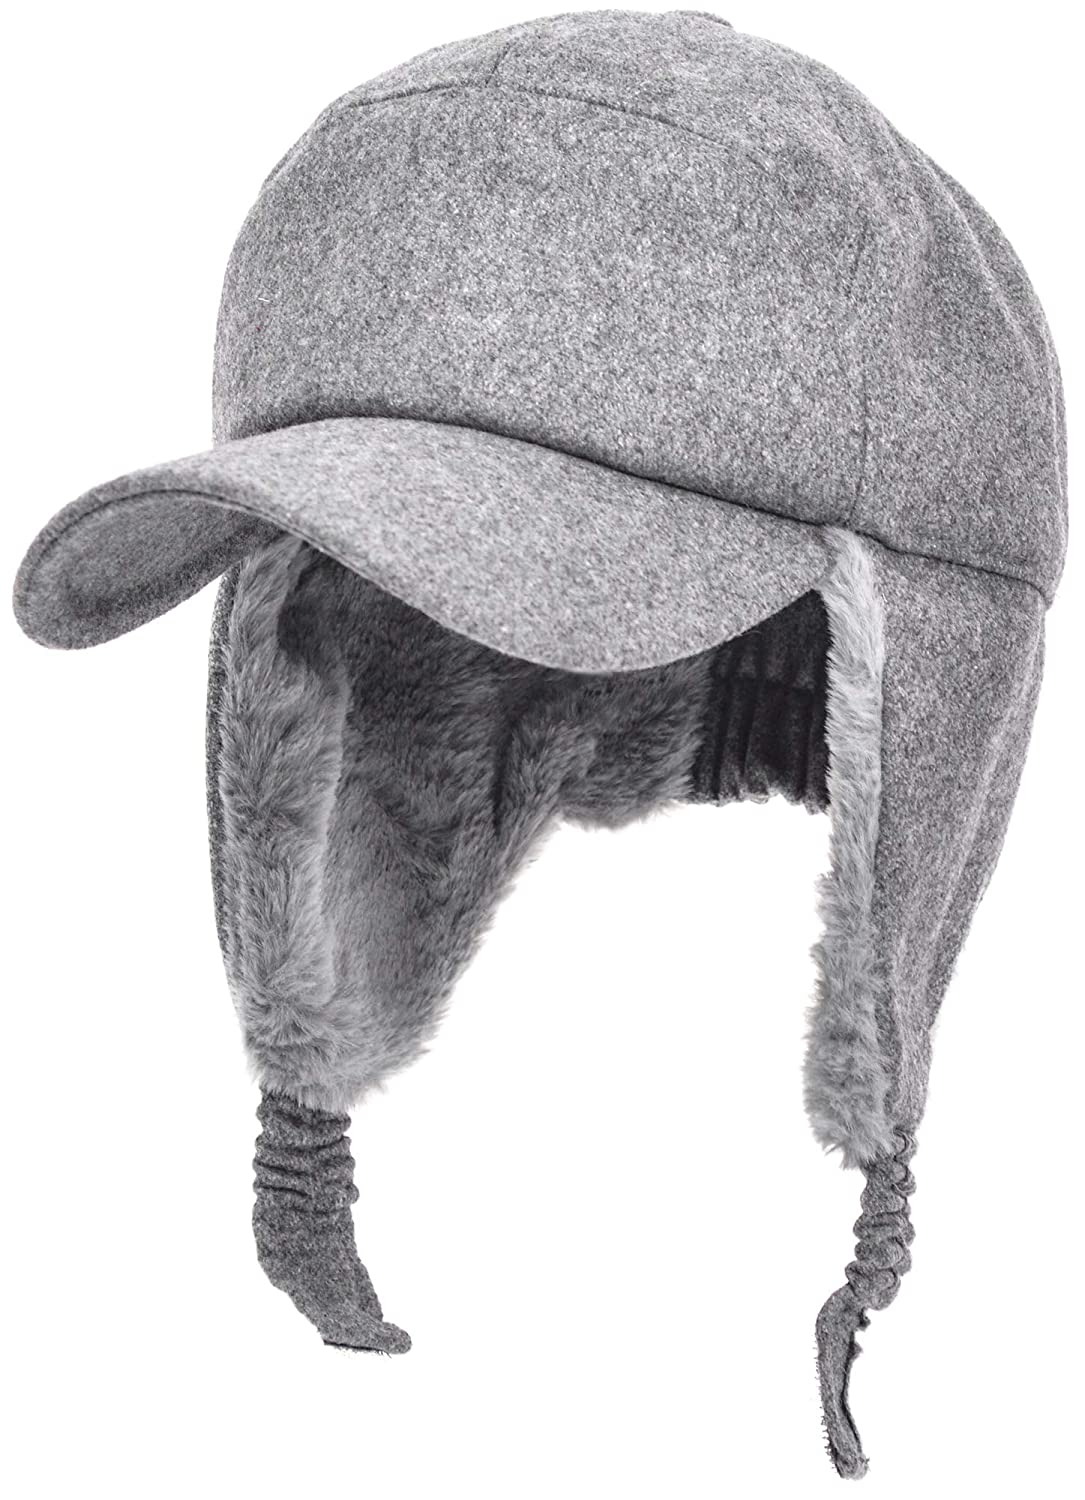 f94a041d5ade9 Womens Mens Winter Warm Premium Wool Woolen Peaked Baseball Cap With Faux  Fur Fold Earmuffs Earflap Windproof Hat Visor Cap